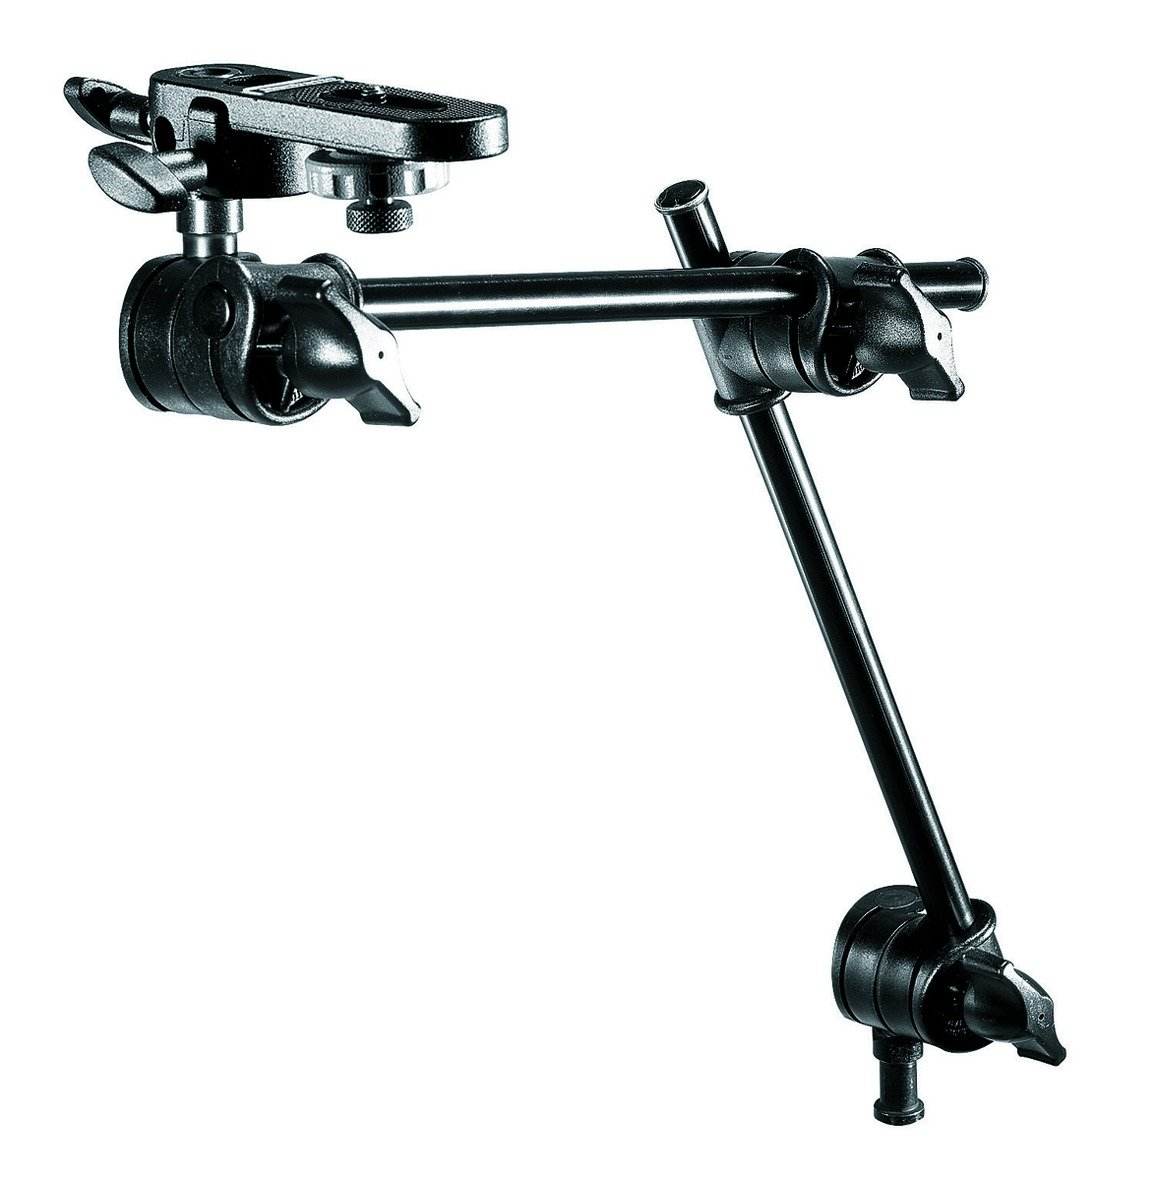 Manfrotto 196B-2 143BKT 2-Section Single Articulated Arm with Camera Bracket (Black)